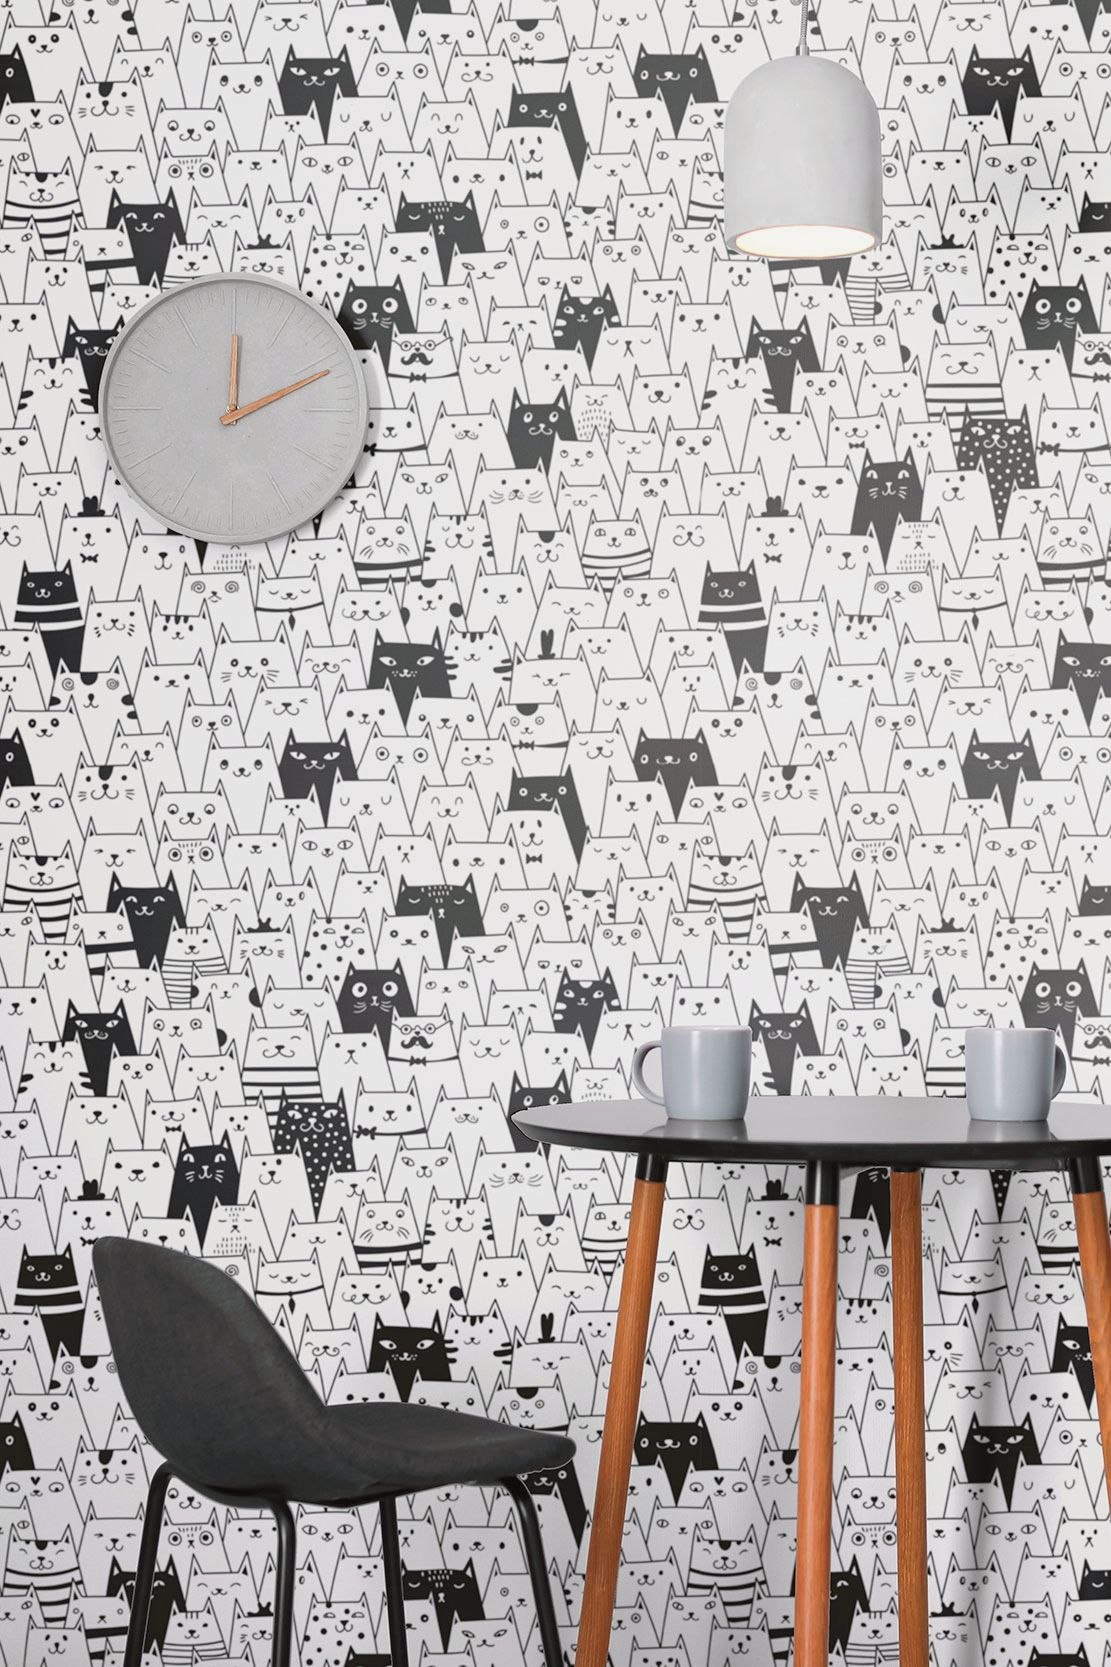 Black And White Geometric Animal Peel And Stick Removable Wallpaper 6188 Living Room Removable Wallpaper Removable Wallpaper Aesthetic Room Decor